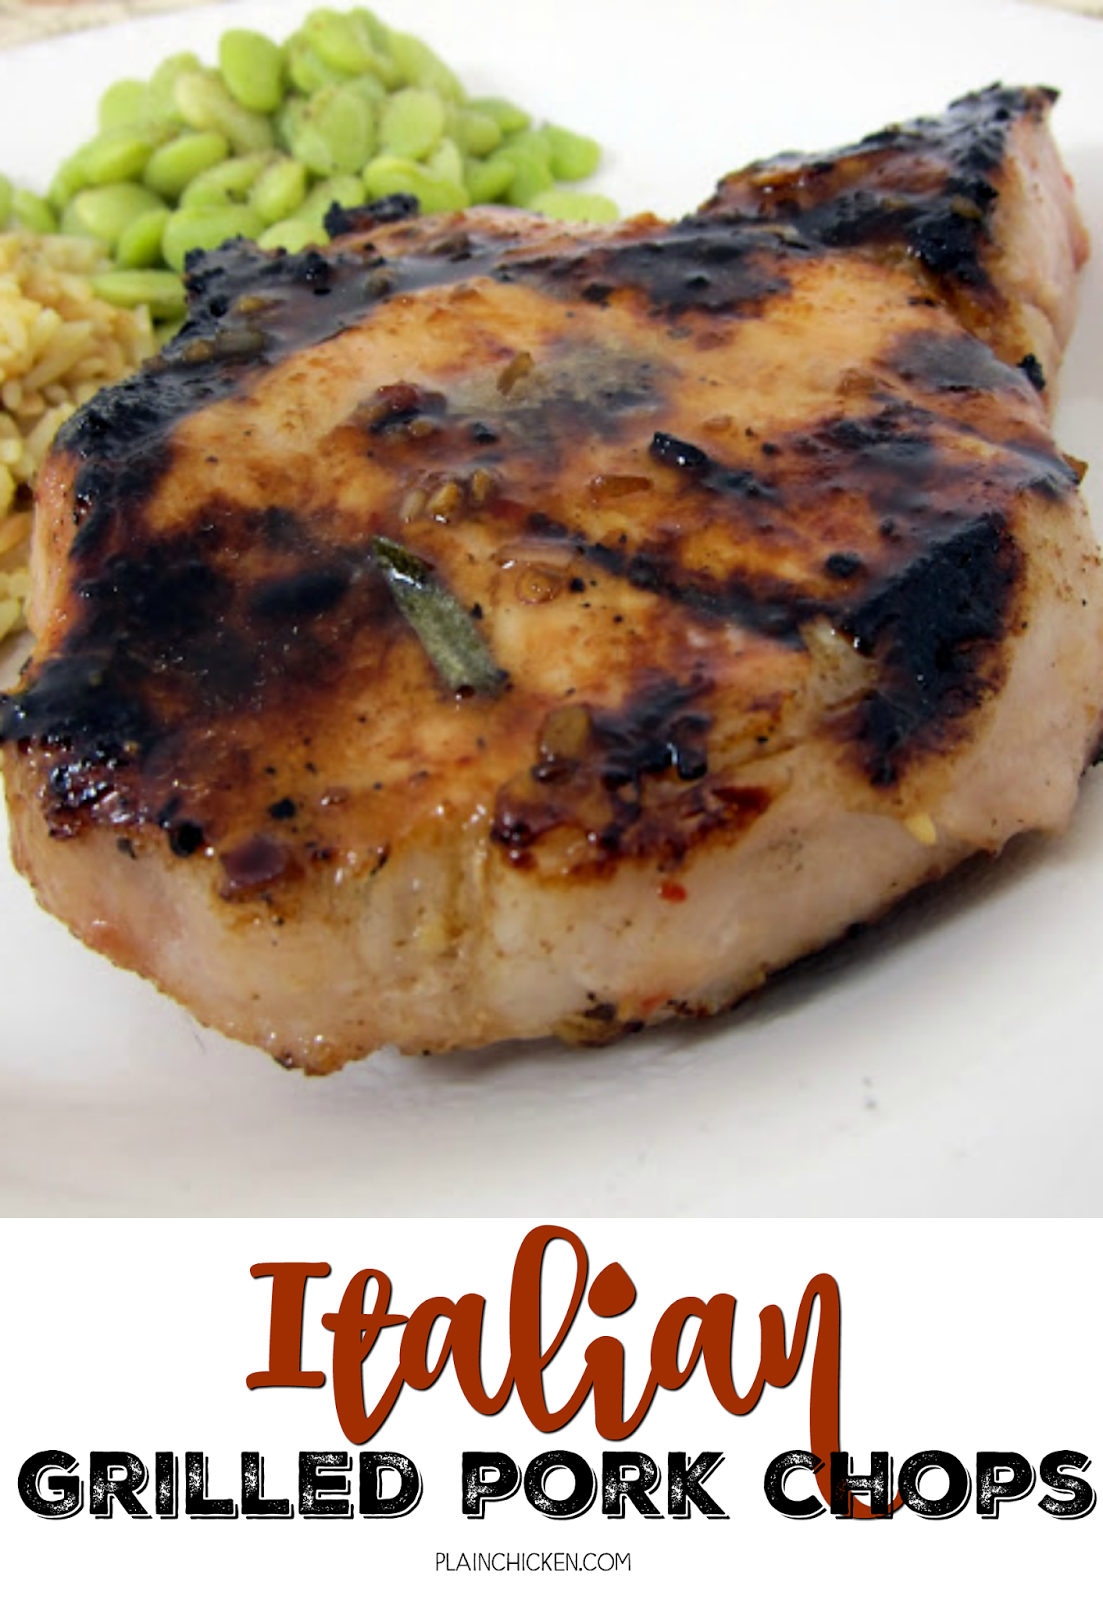 Italian Grilled Pork Chops - pork chops marinated in Italian dressing, balsamic vinegar, Worcestershire, honey and rosemary. Can mix together the night before and they are ready to grill when you get home from work. SO easy and super delicious!